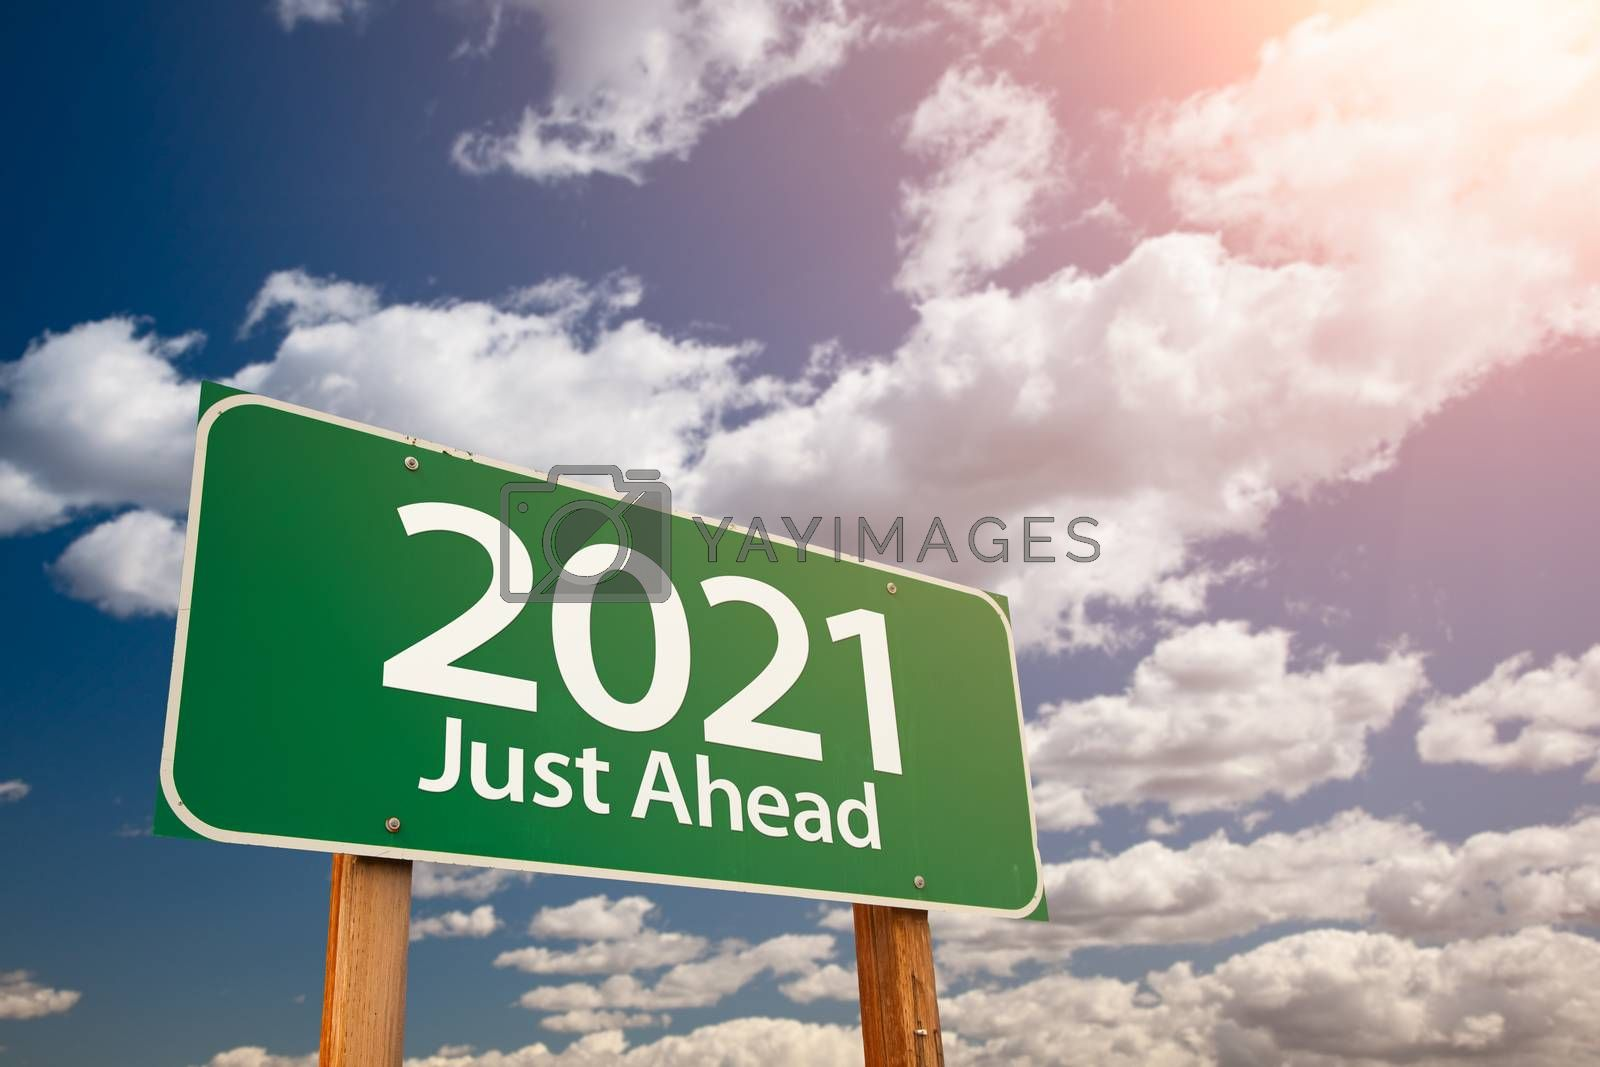 2021 Green Road Sign Over Dramatic Clouds and Sky by Feverpitched